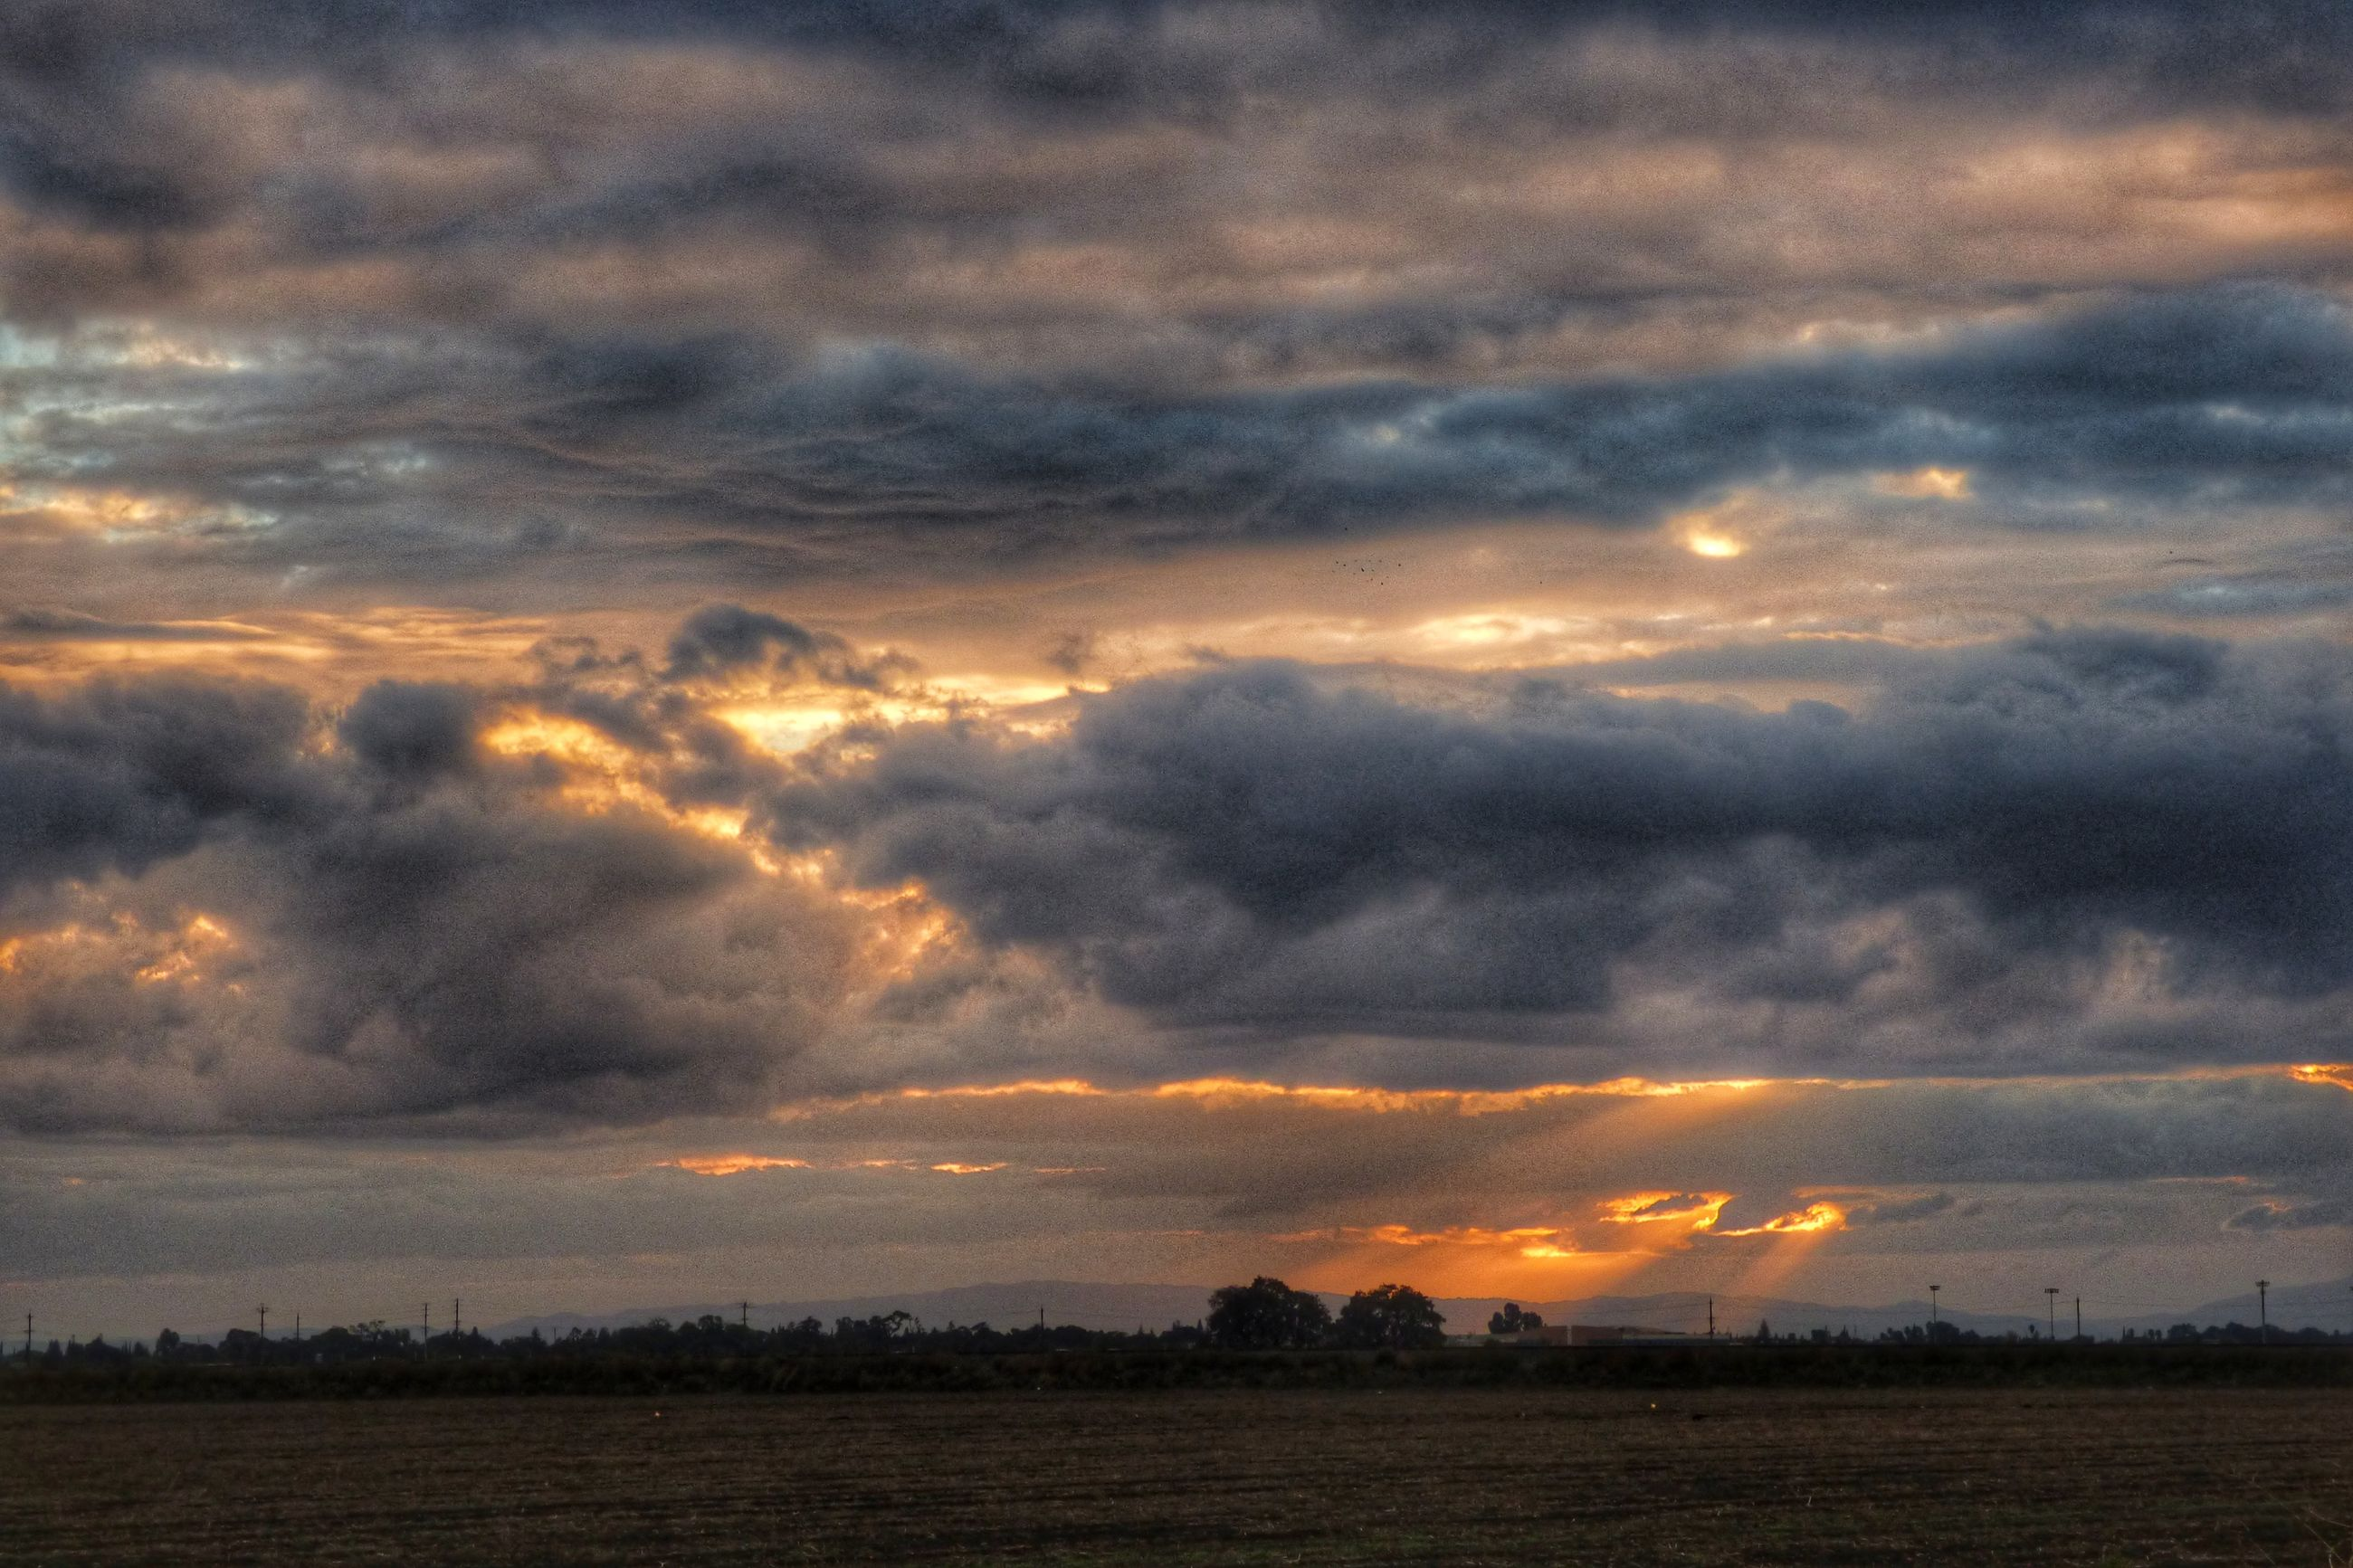 sunset, dramatic sky, cloud - sky, sky, scenics, nature, beauty in nature, night, cloudscape, no people, landscape, silhouette, outdoors, star - space, astronomy